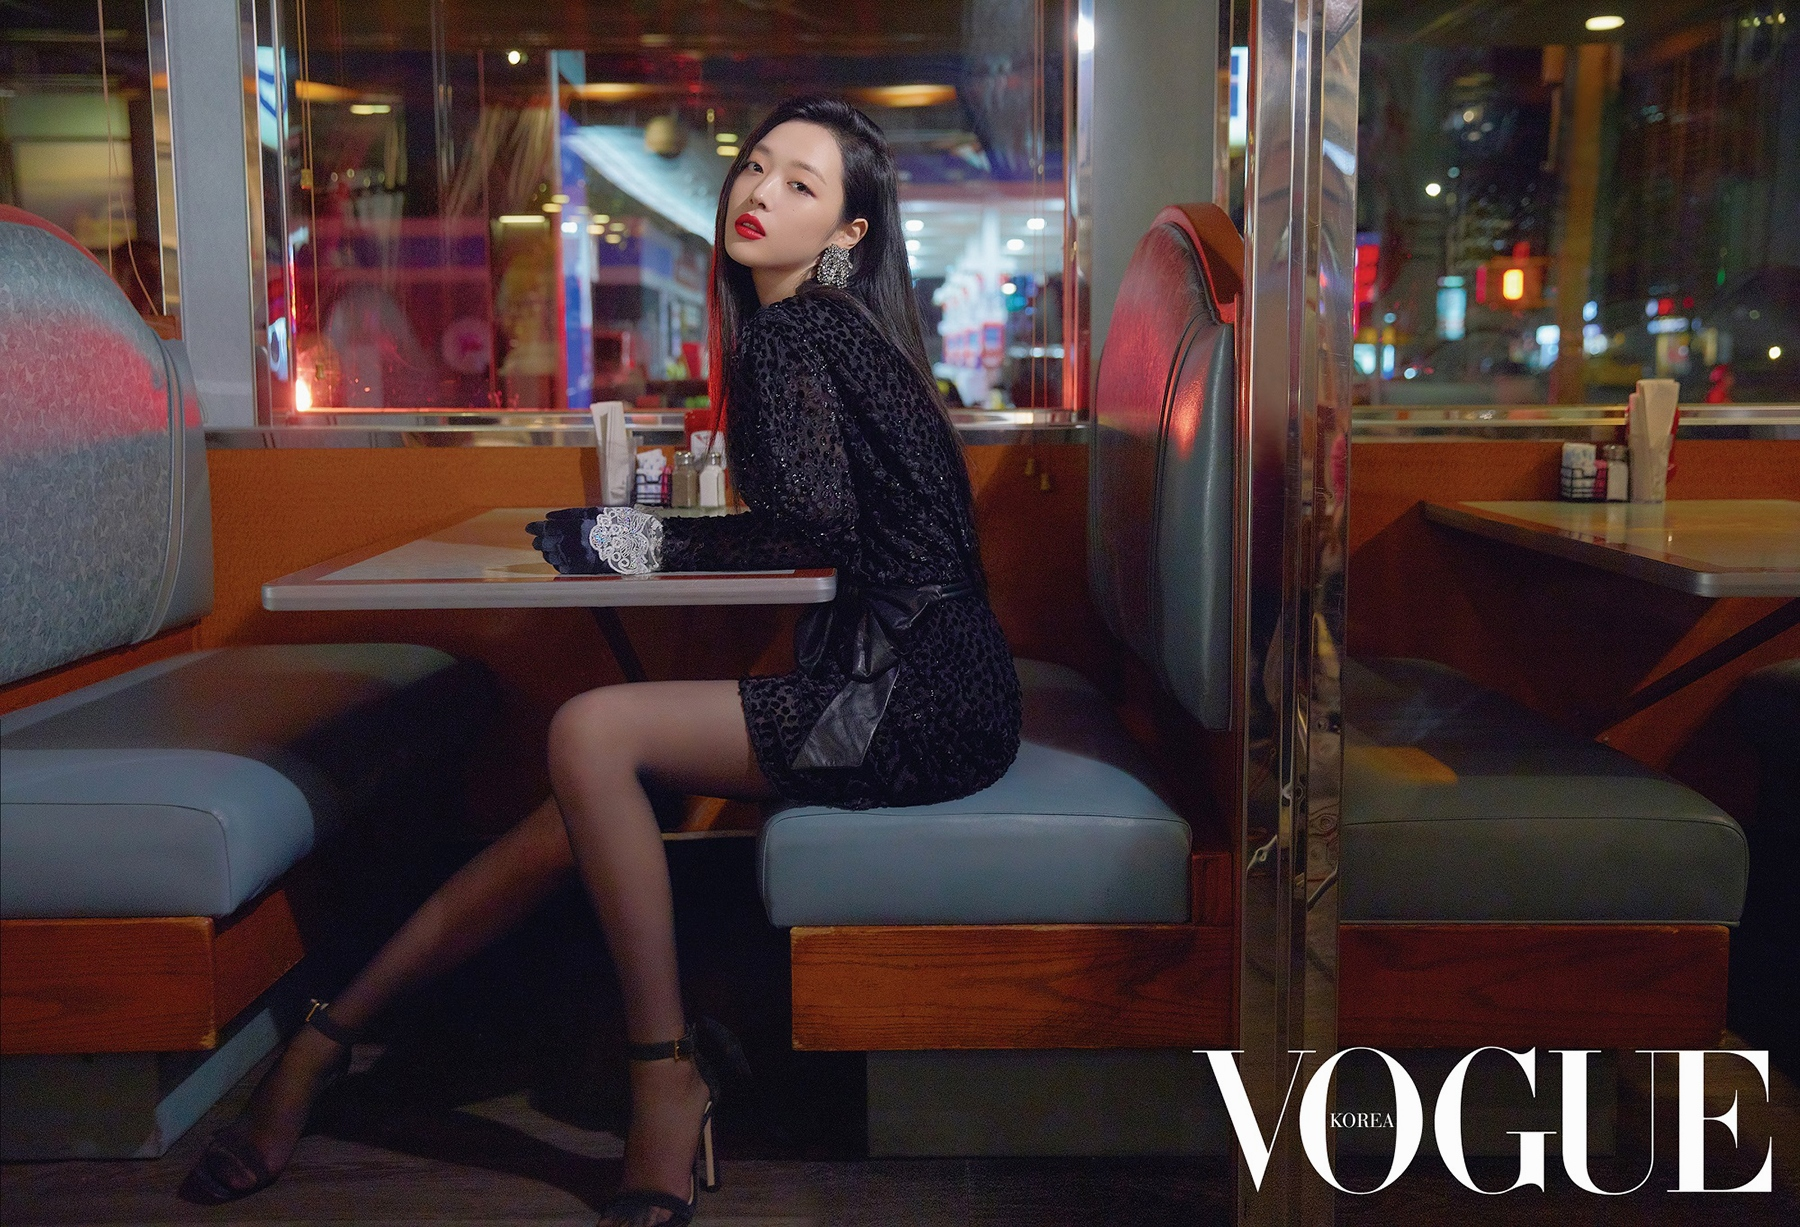 VOGUE-Sulli-1-www.kgirls.net.jpg